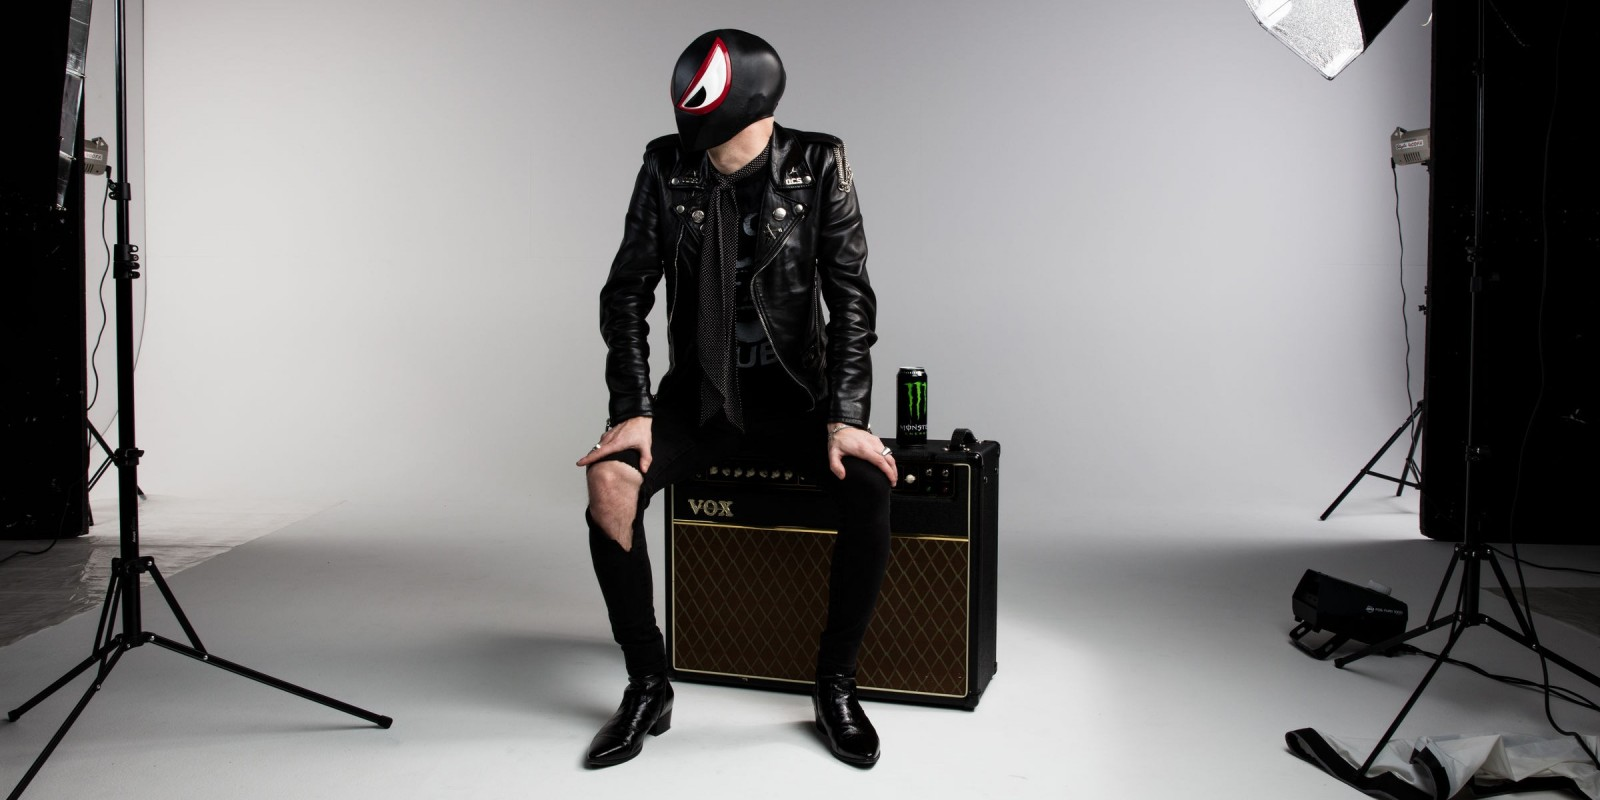 Behind the scenes images of The Bloody Beetroots.